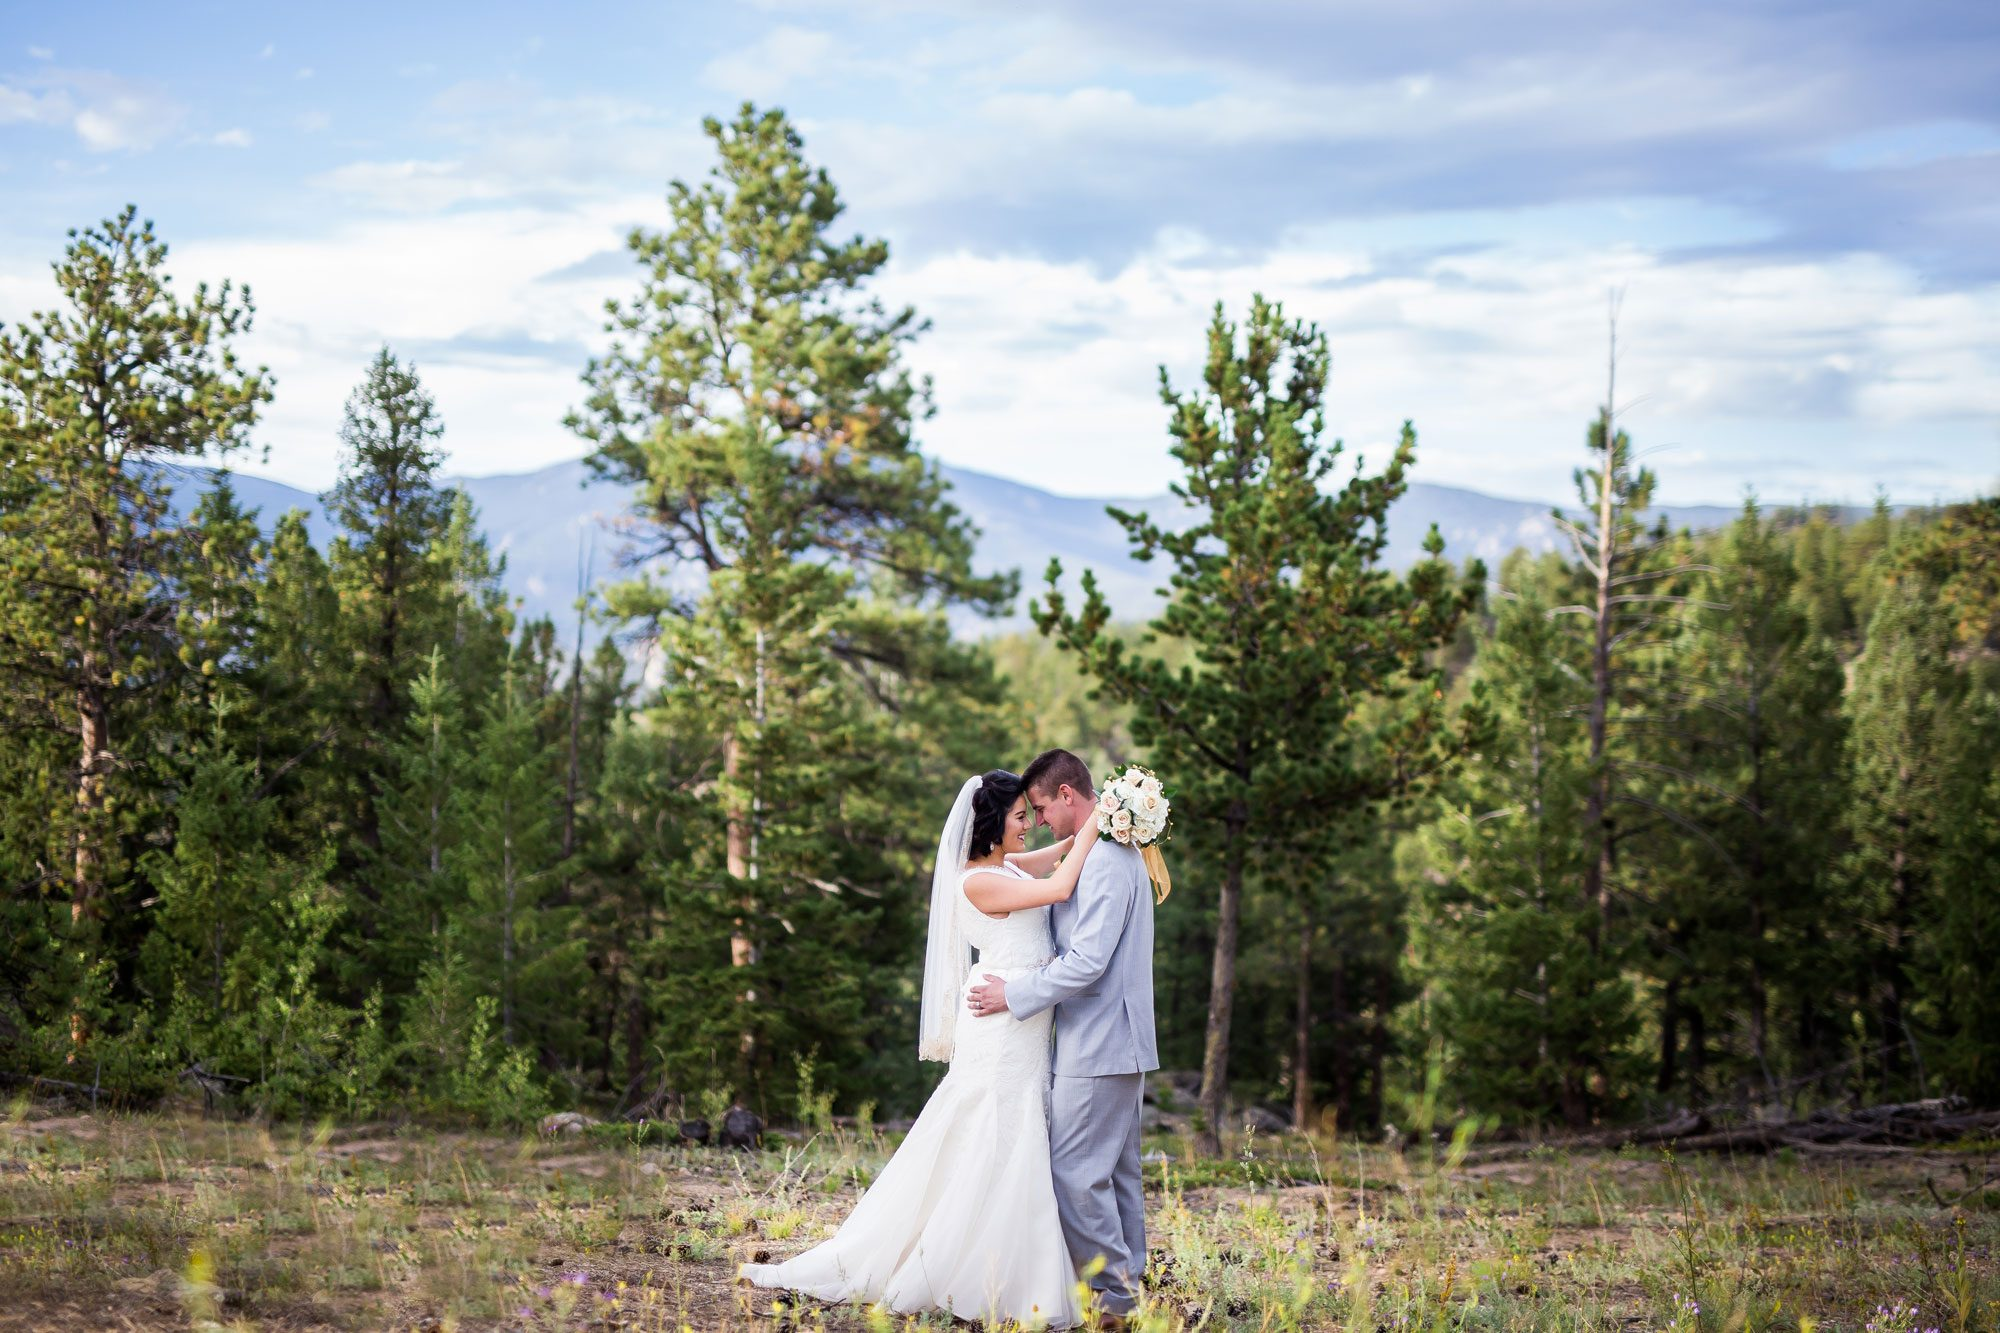 An Intimate Mountain Wedding in Estes Park